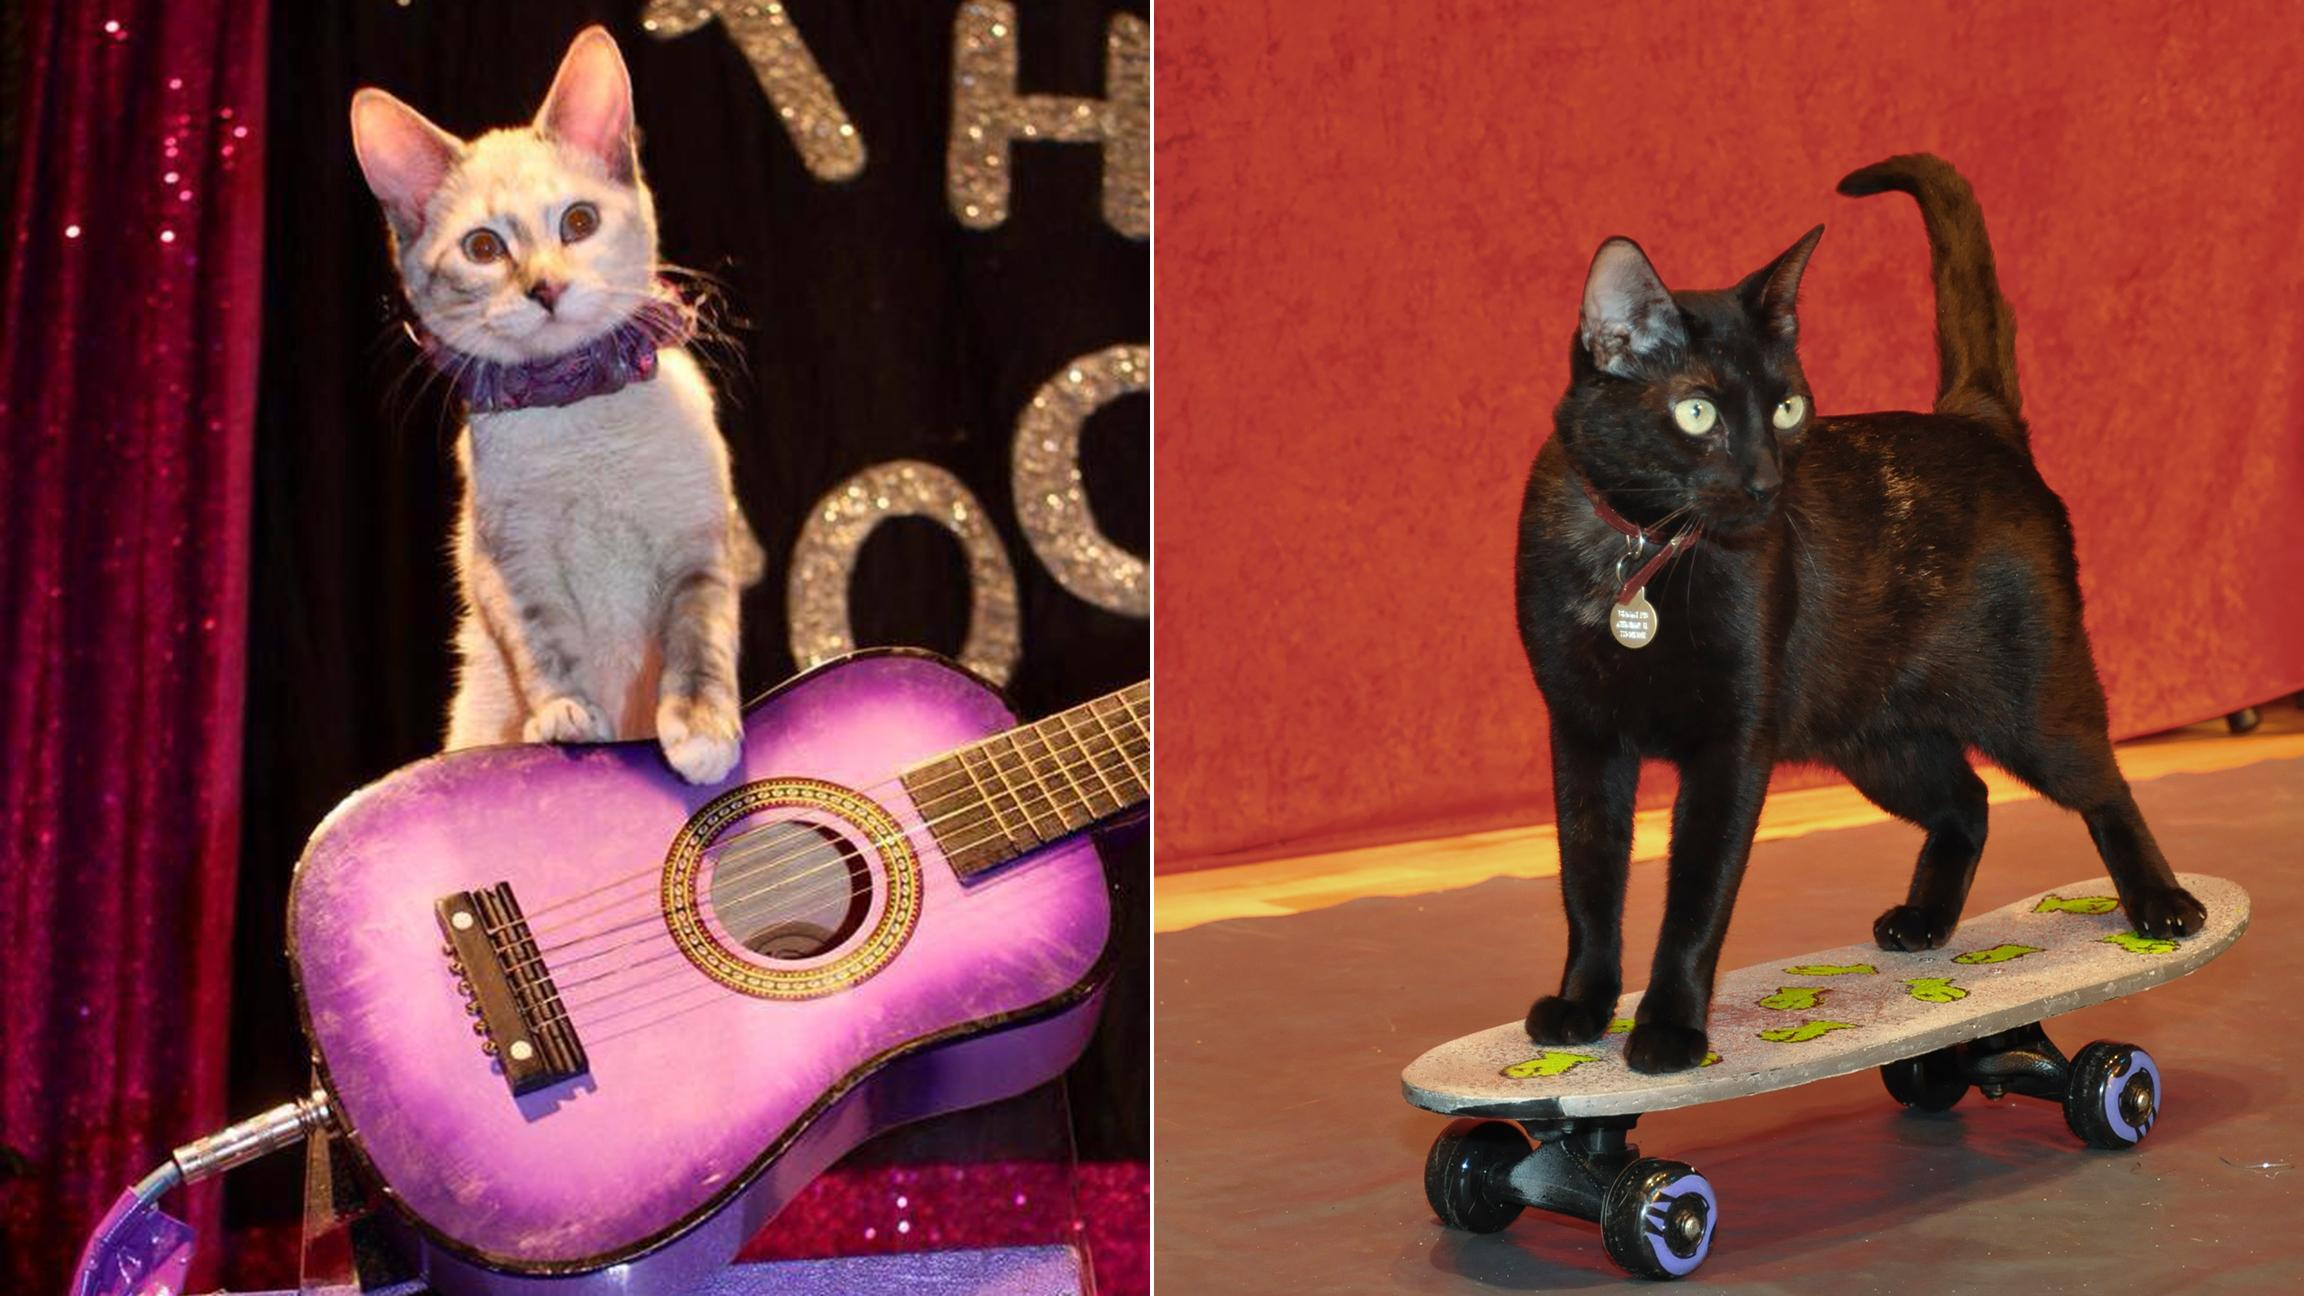 Rock 'n' roll: Cats can do a lot more than sleep. See feline feats at the Amazing Acro-Cats show. (Courtesy Samantha Martin)